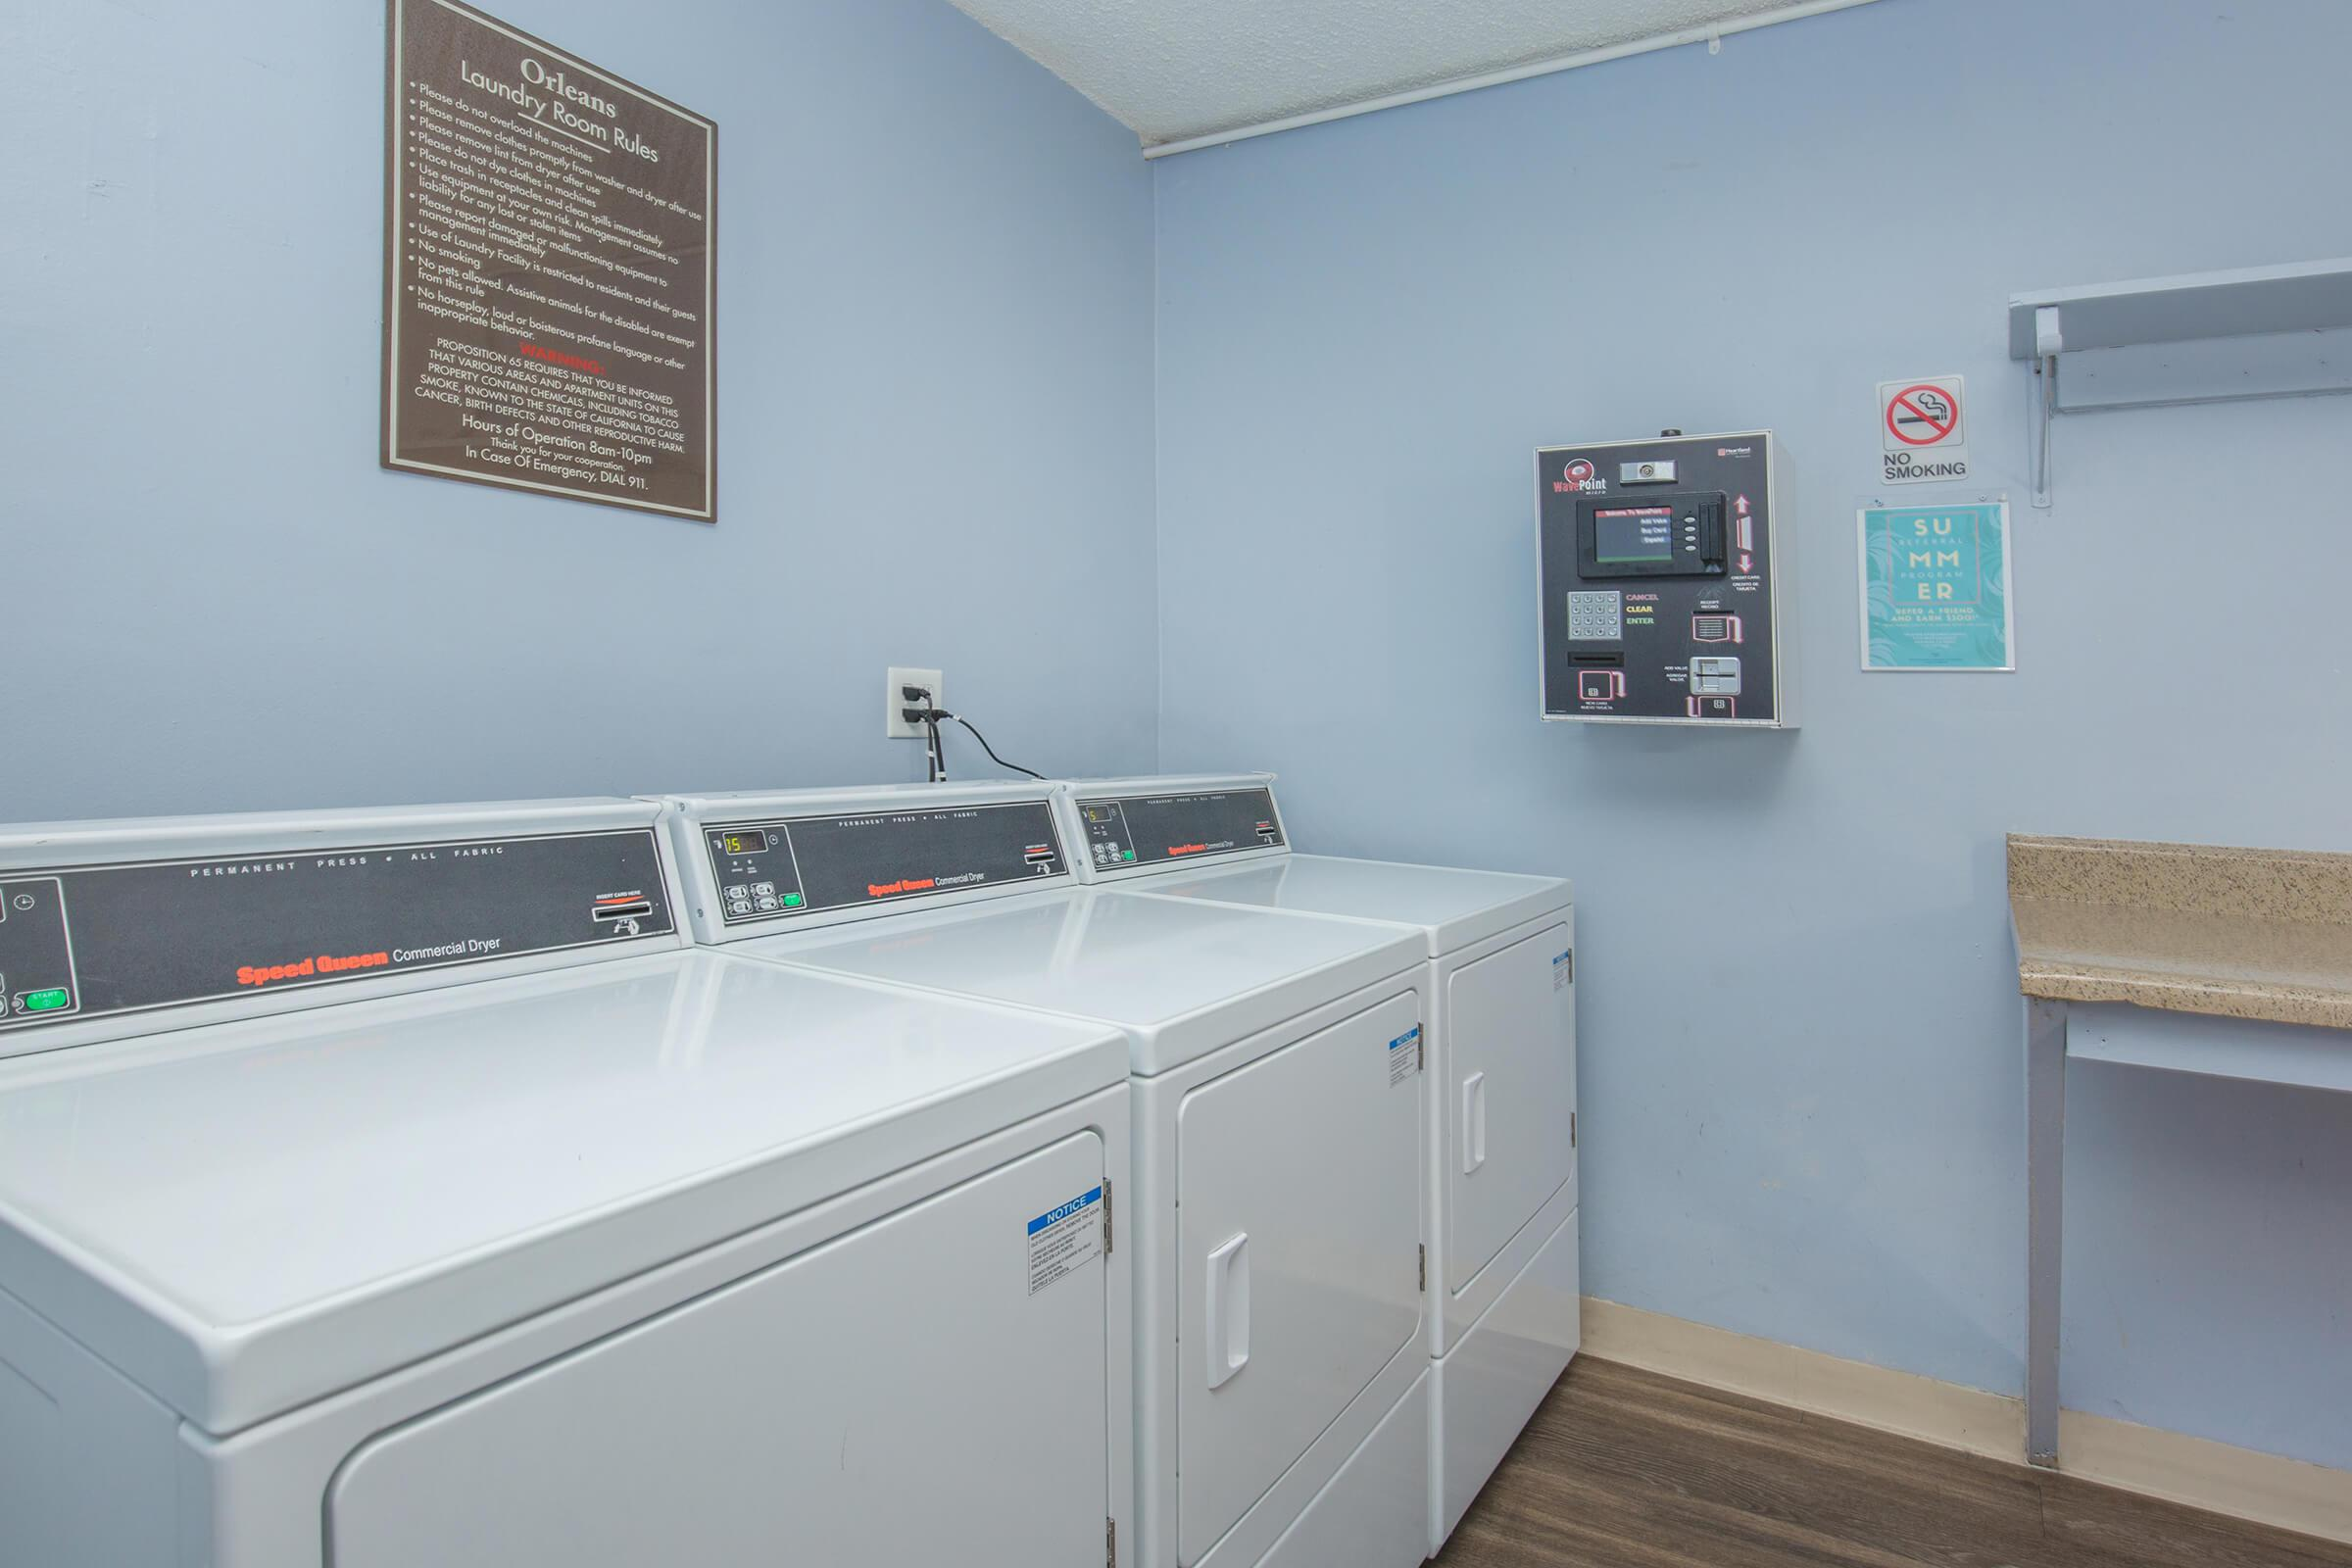 Dryers in the community laundry room